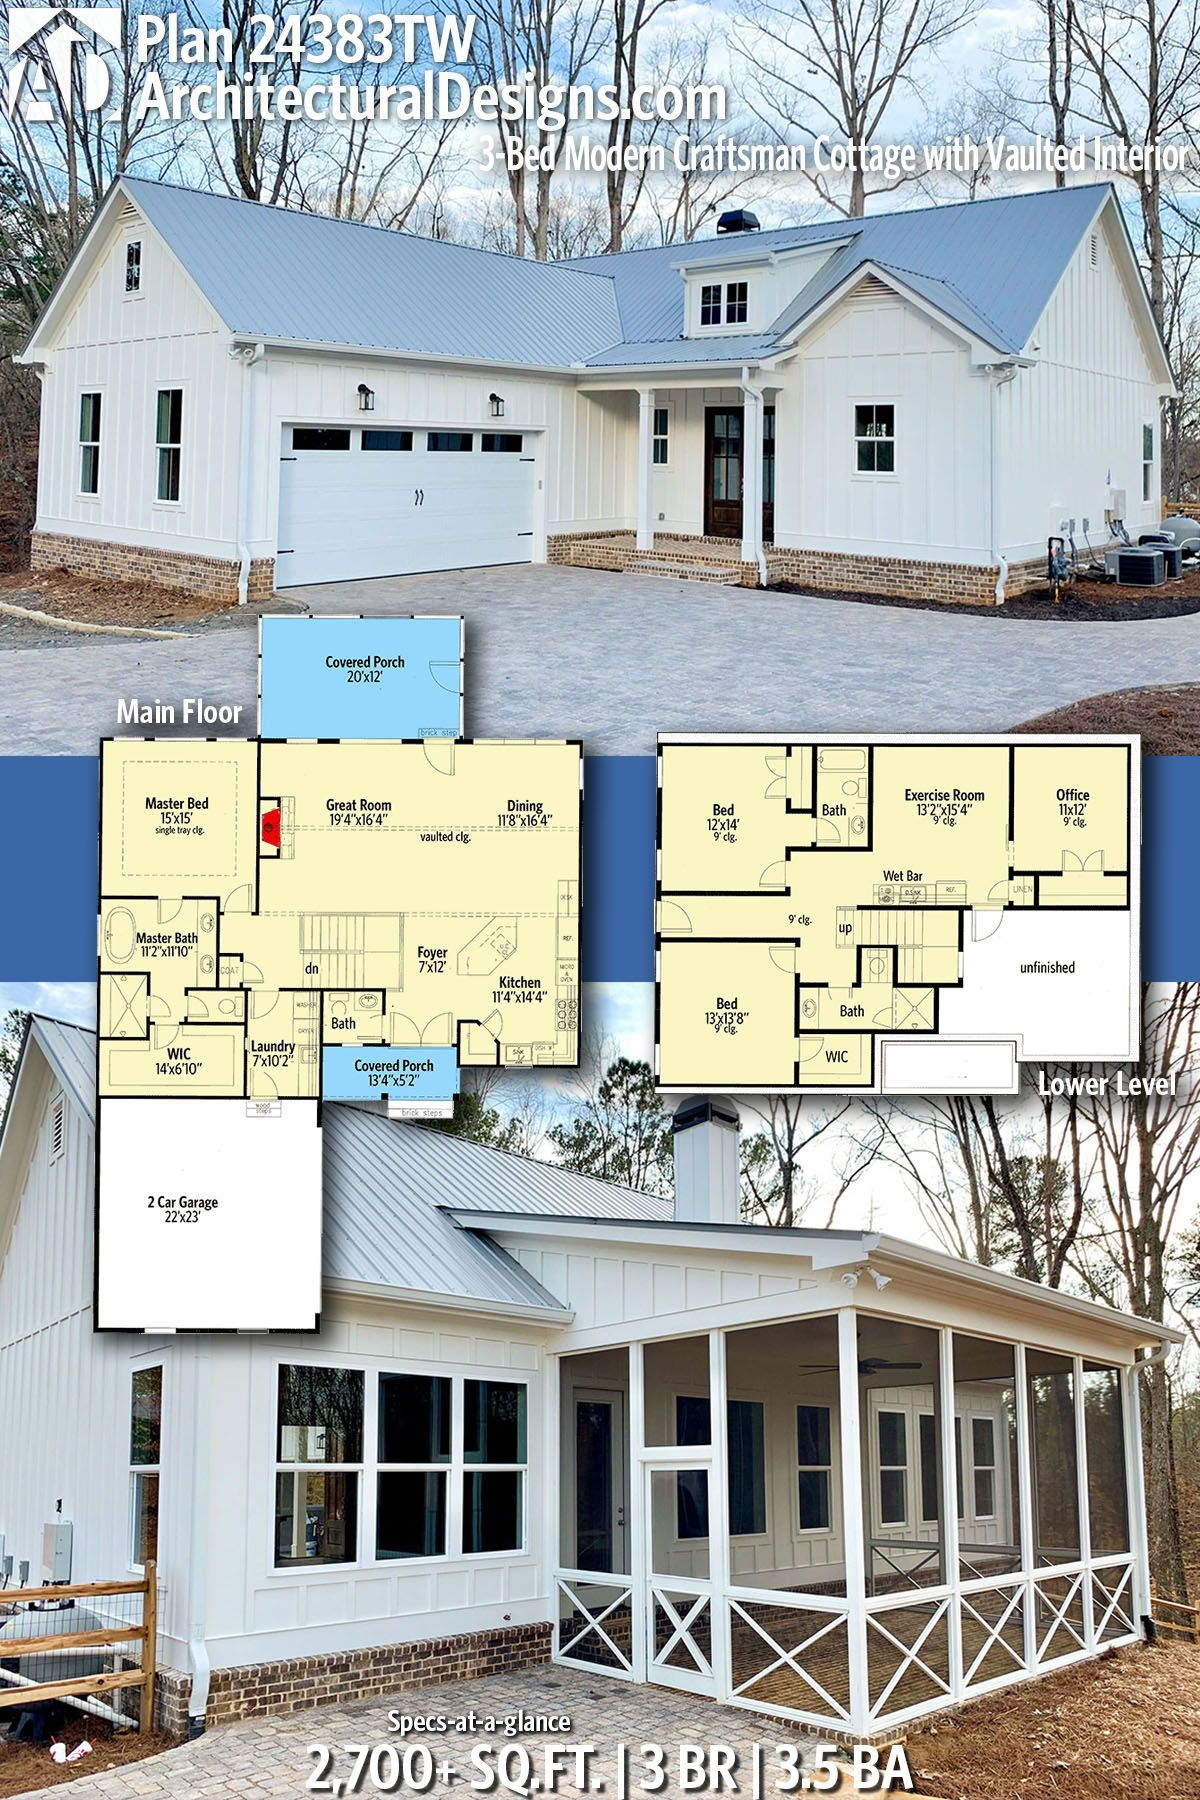 Architectural designs modern craftsman plan tw bedrooms baths square also bed cottage with vaulted interior rh pinterest